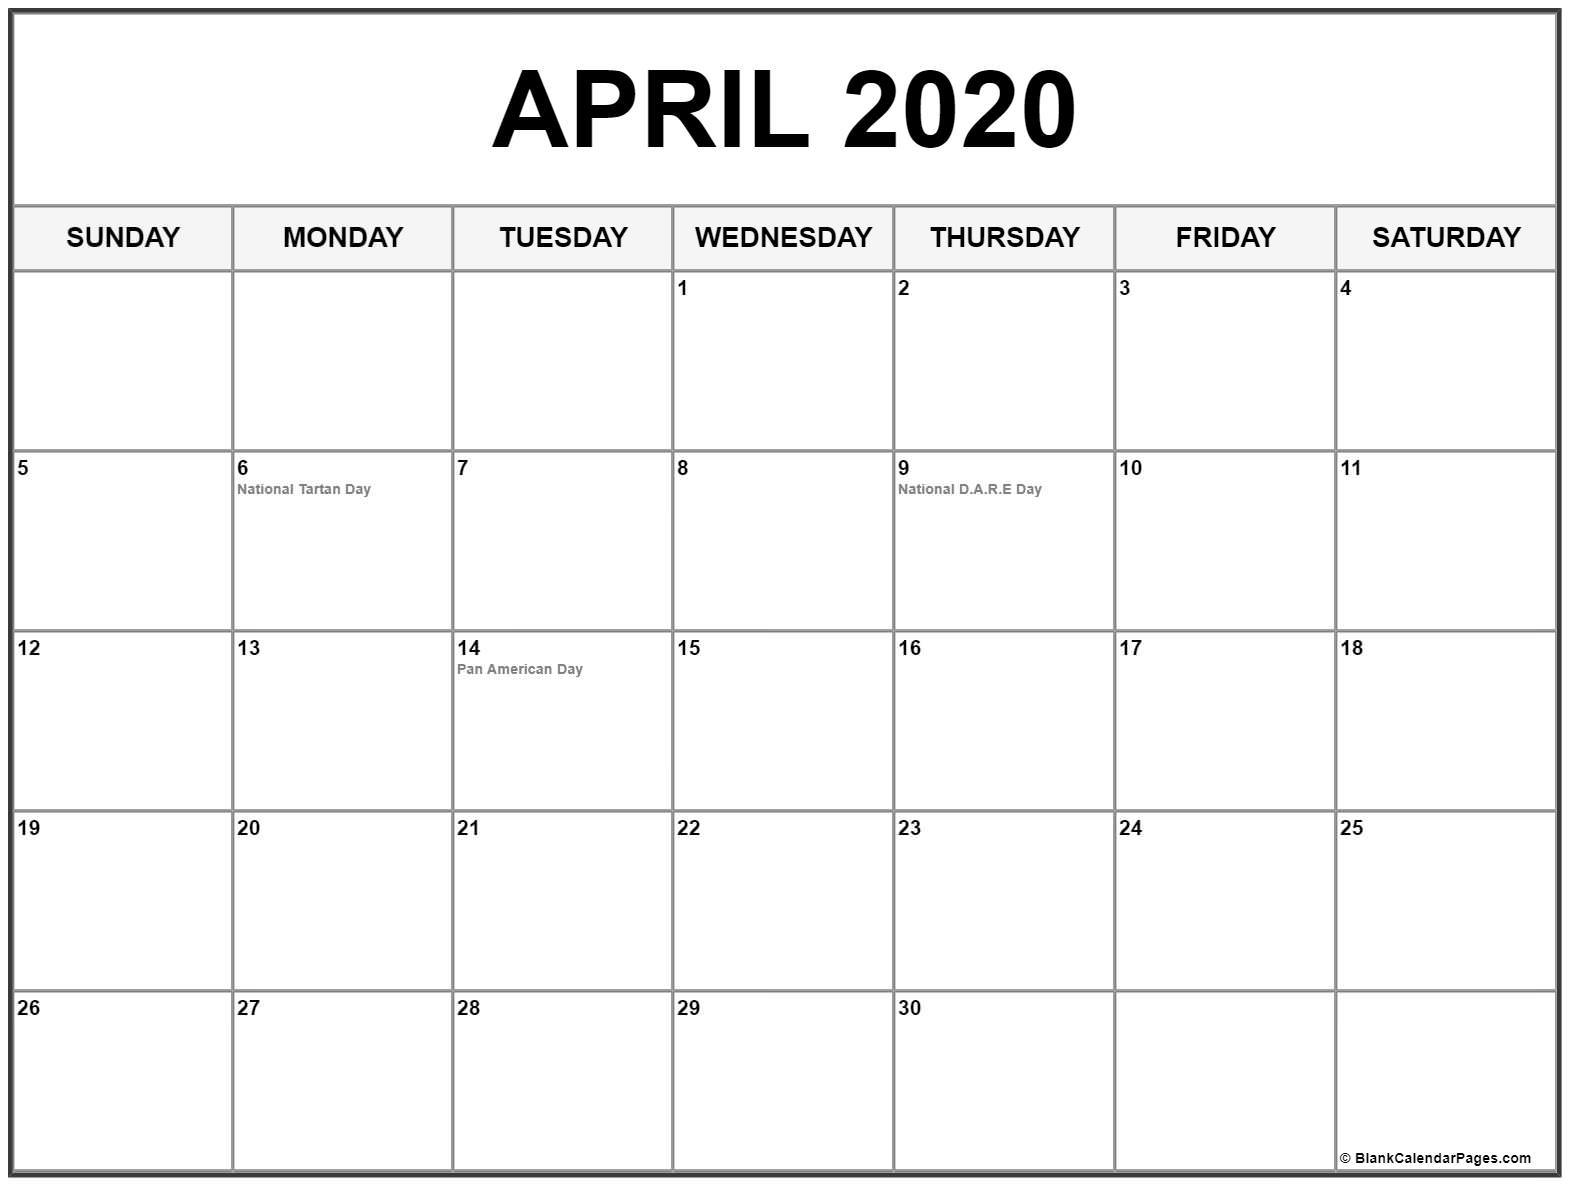 Collection Of April 2020 Calendars With Holidays